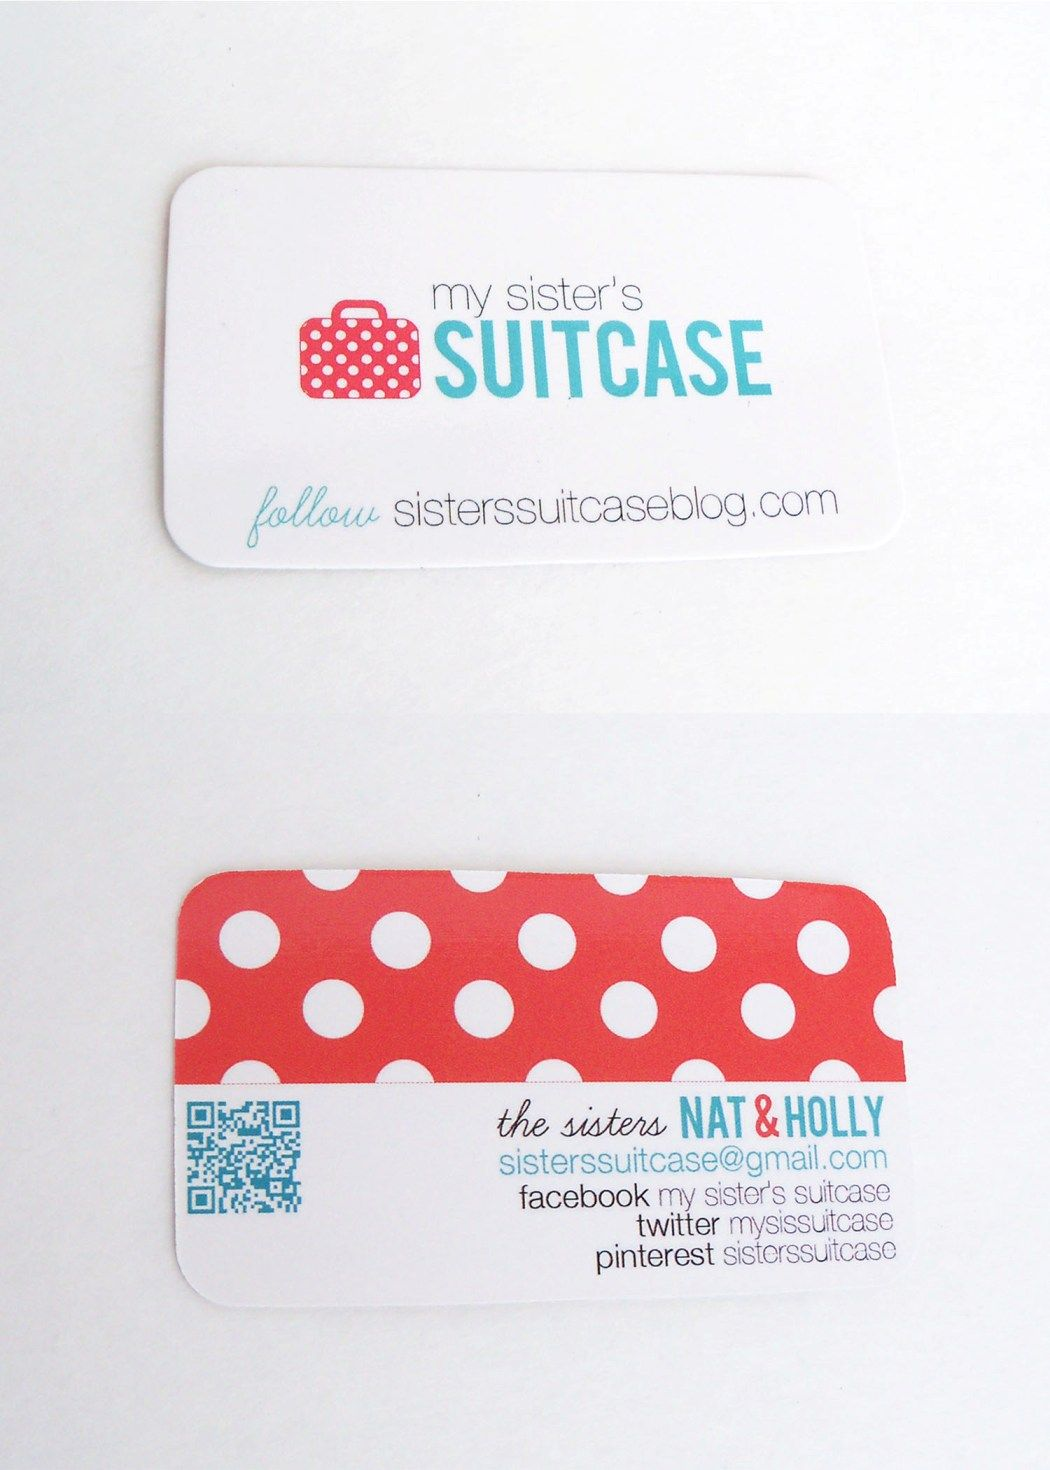 Fancy New UPrinting Business Cards | Suitcase, Business and Business ...